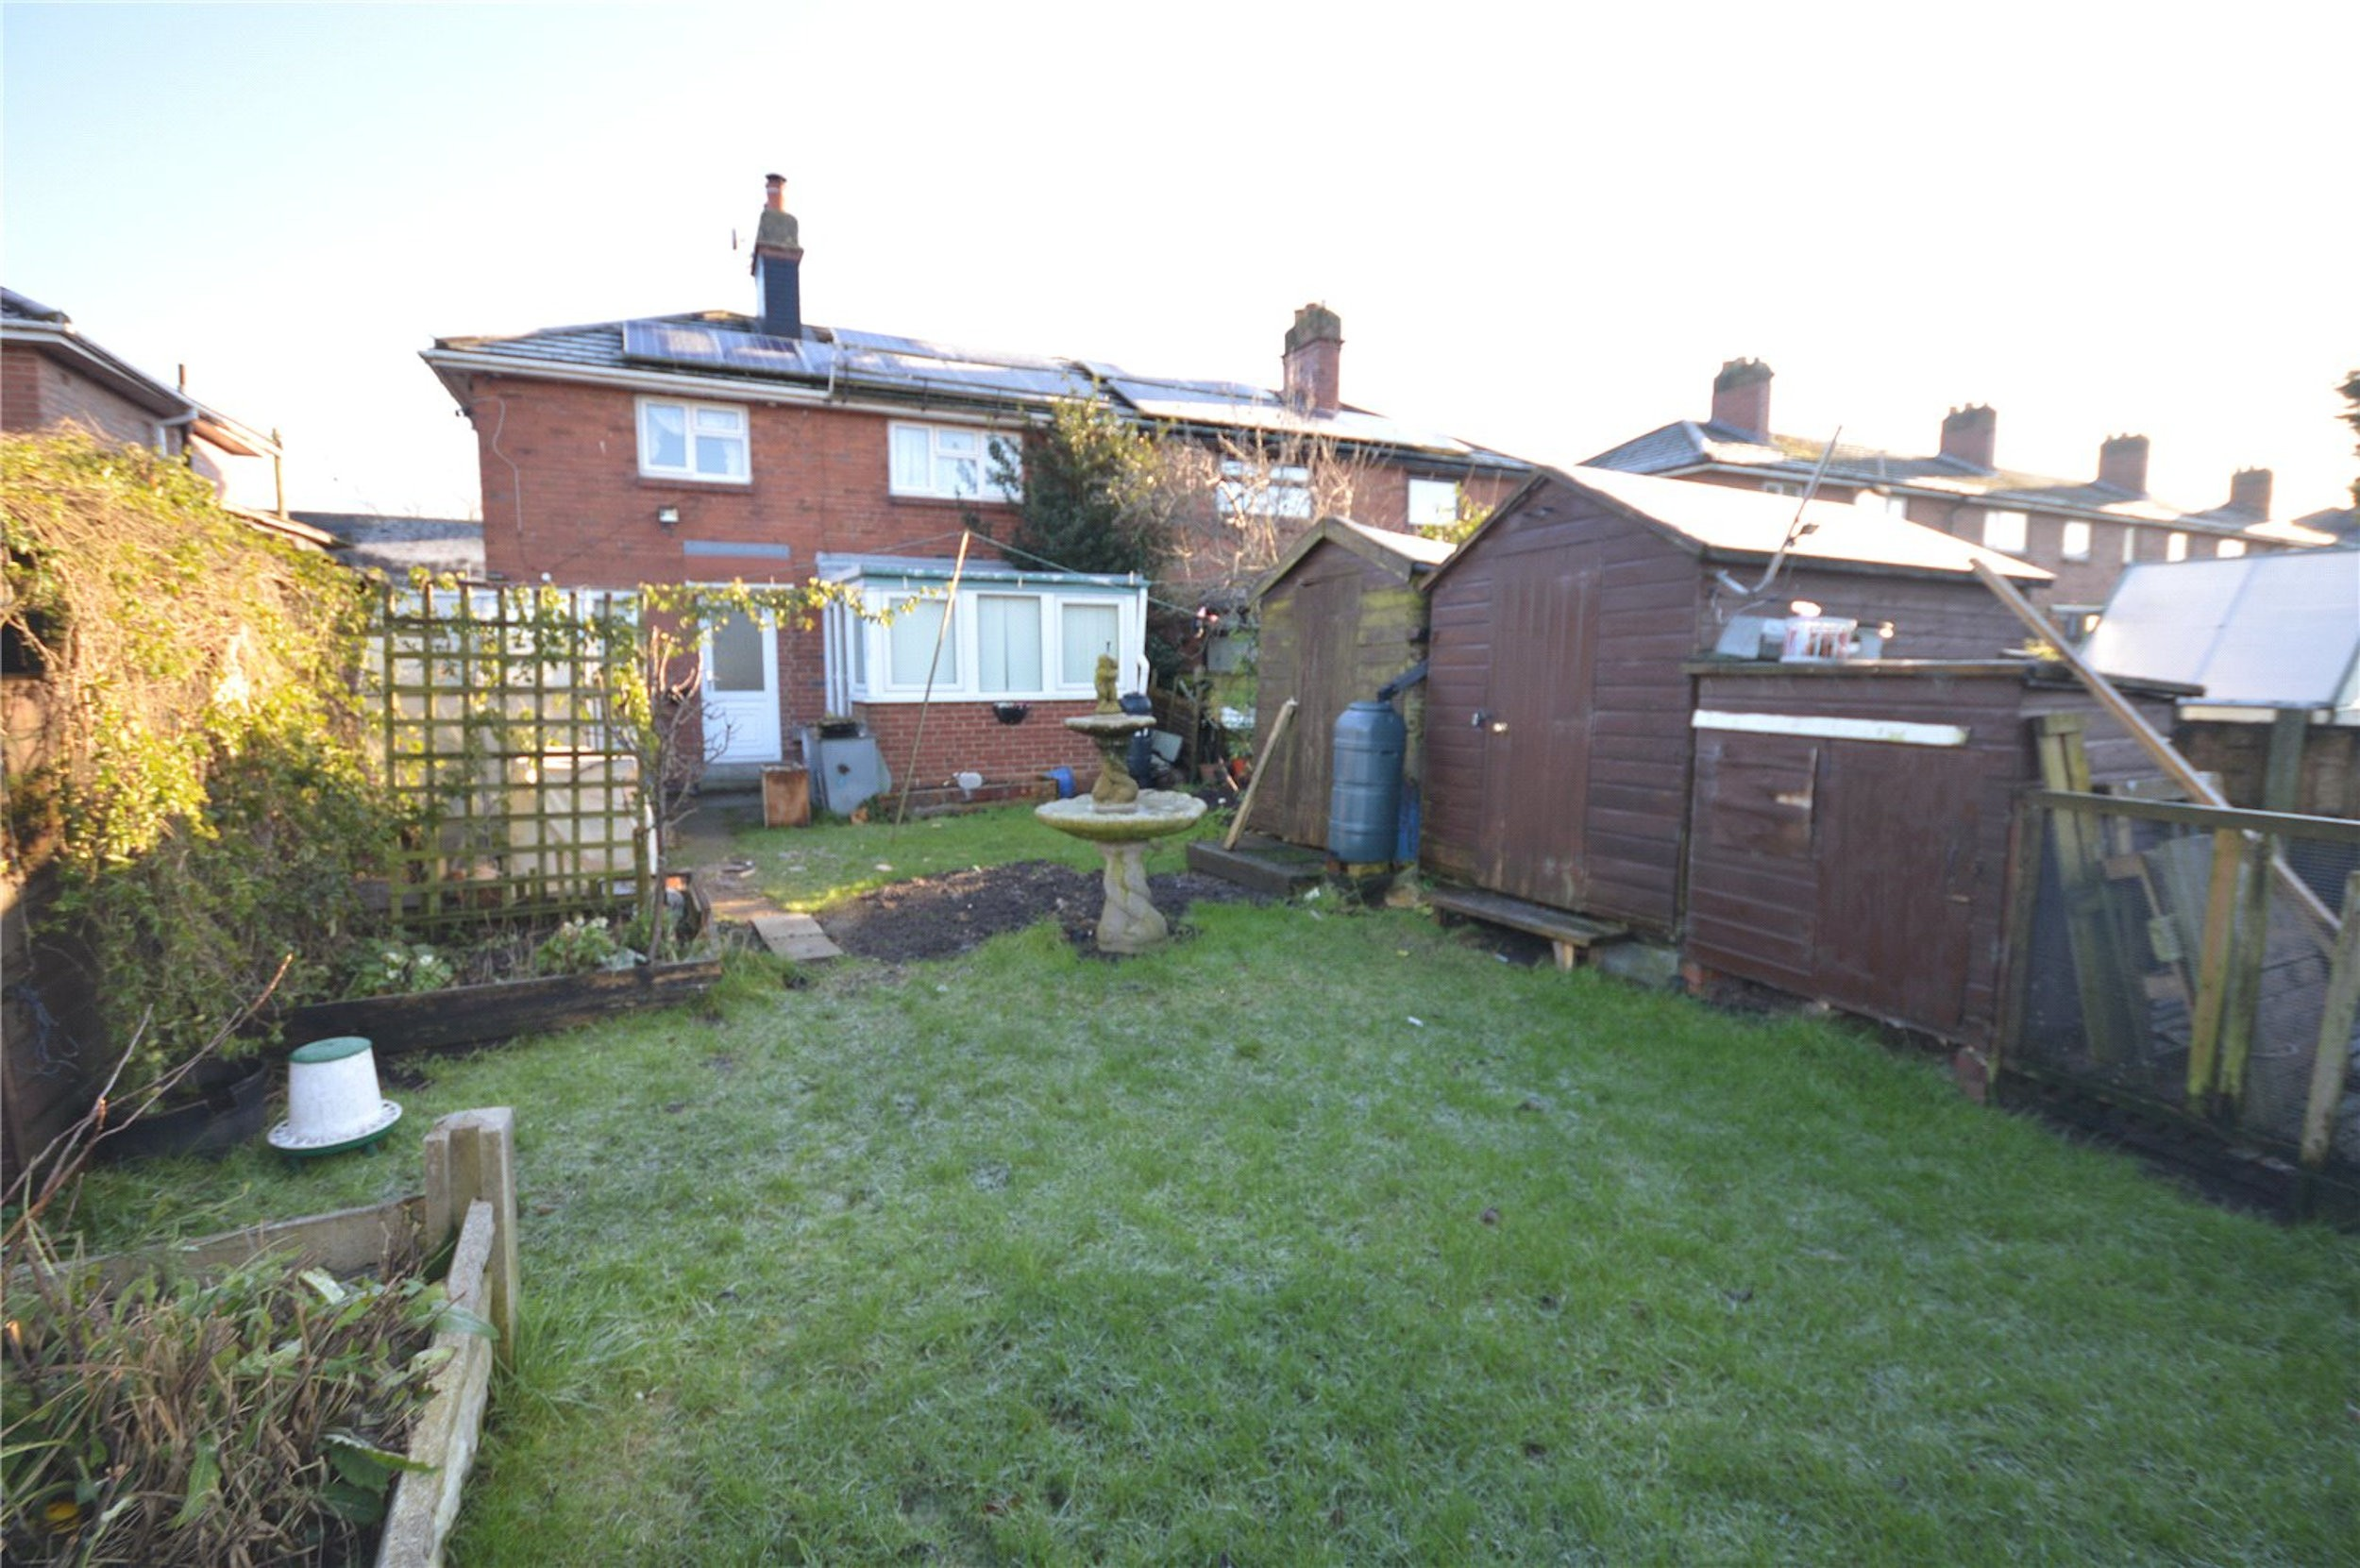 Property for sale with body in garden